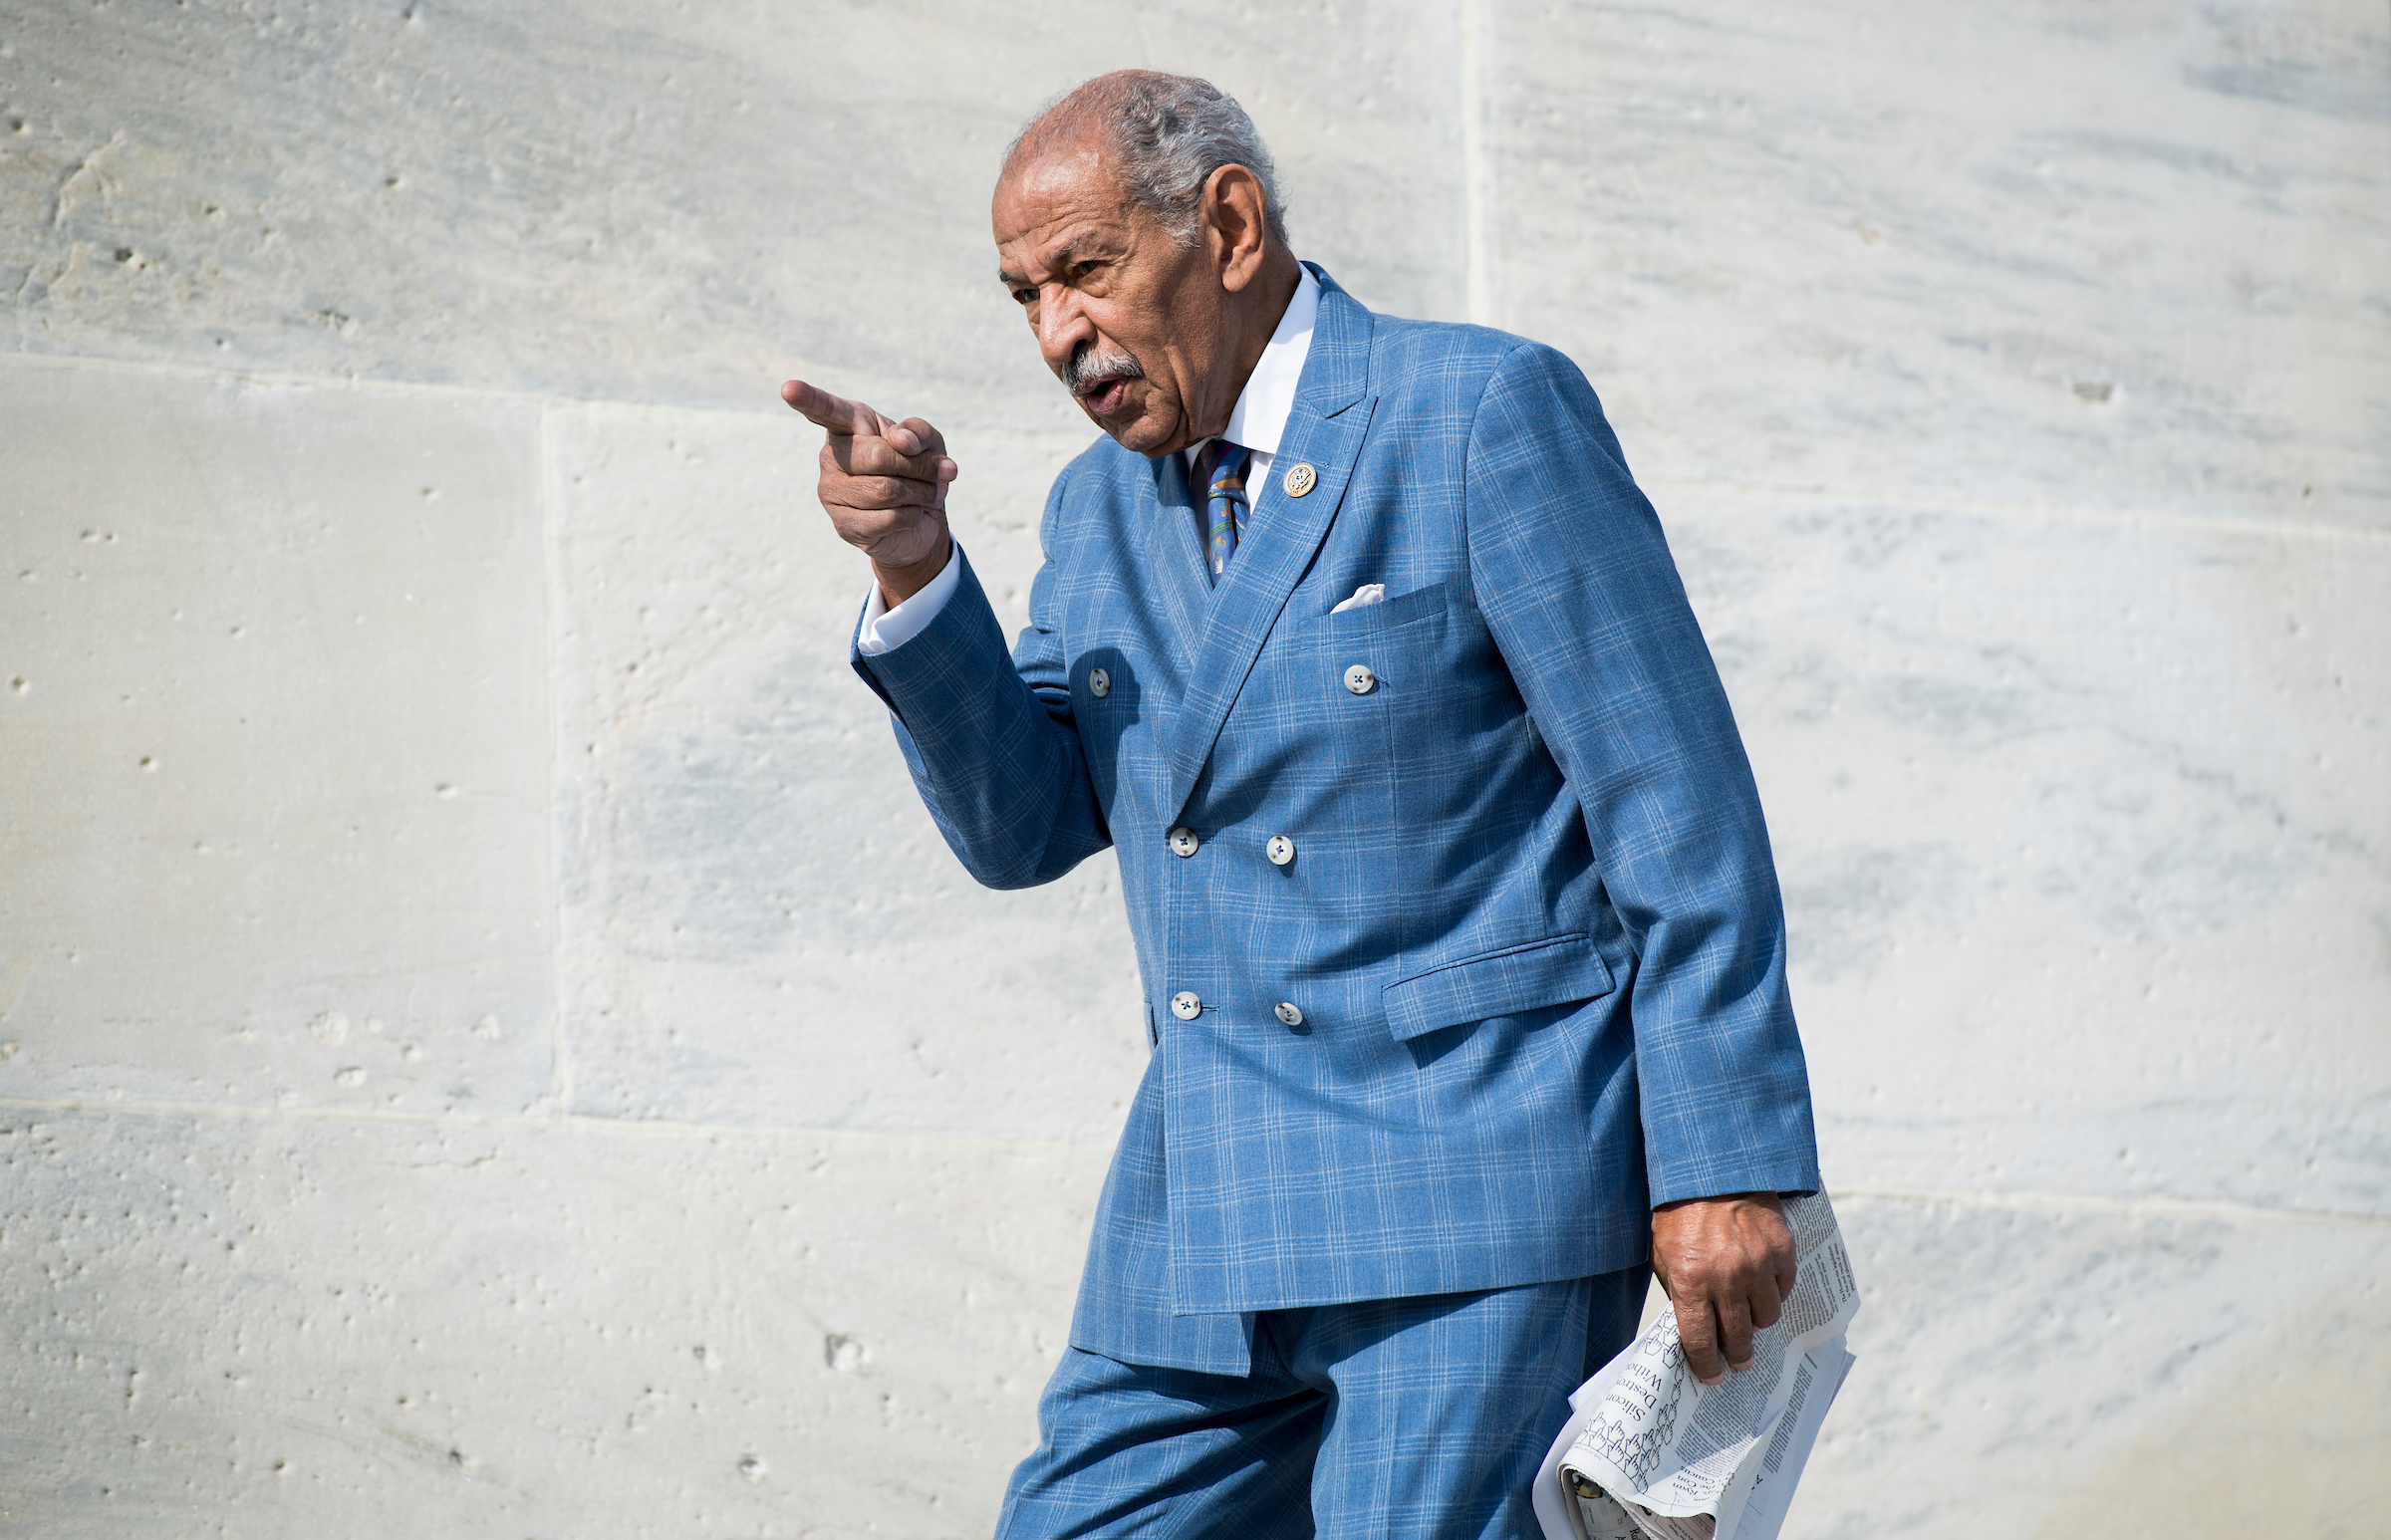 Rep. John Conyers, D-Mich., walks down the House steps after voting in the Capitol on Friday, Nov. 3, 2017. (Photo By Bill Clark/CQ Roll Call)